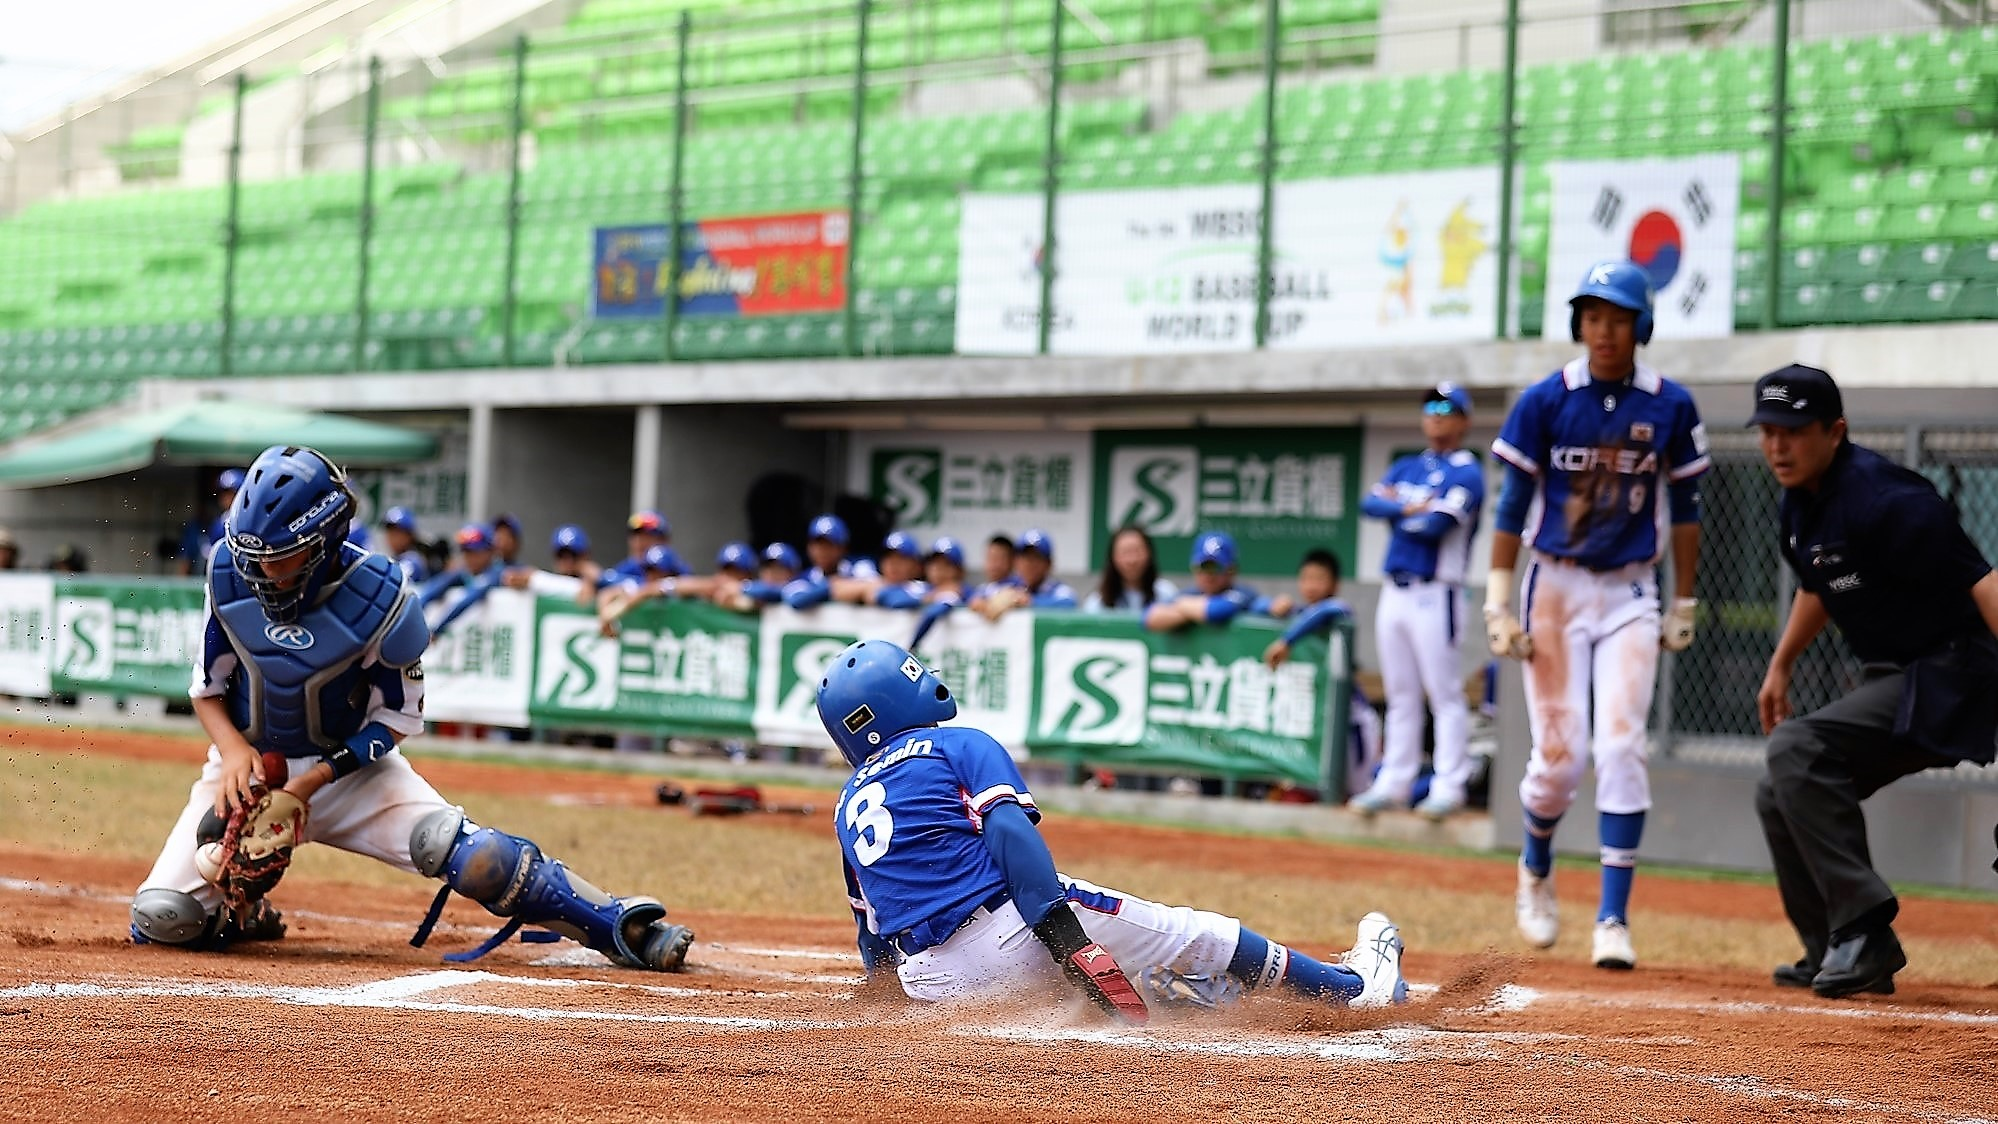 Korea scored four in the fifth to end the game